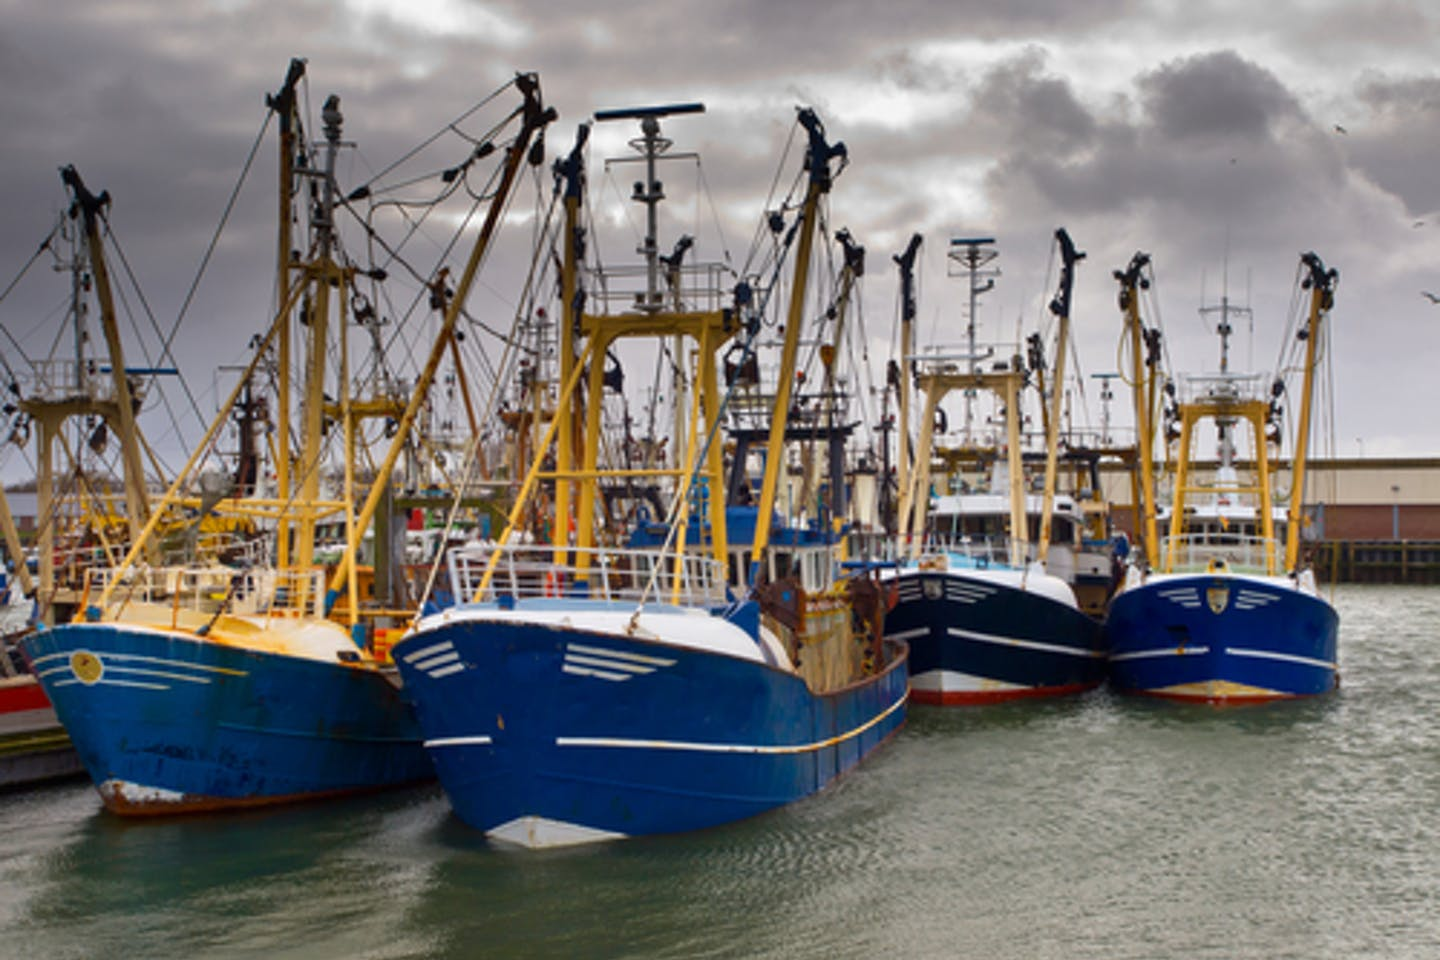 Modern fishing boats